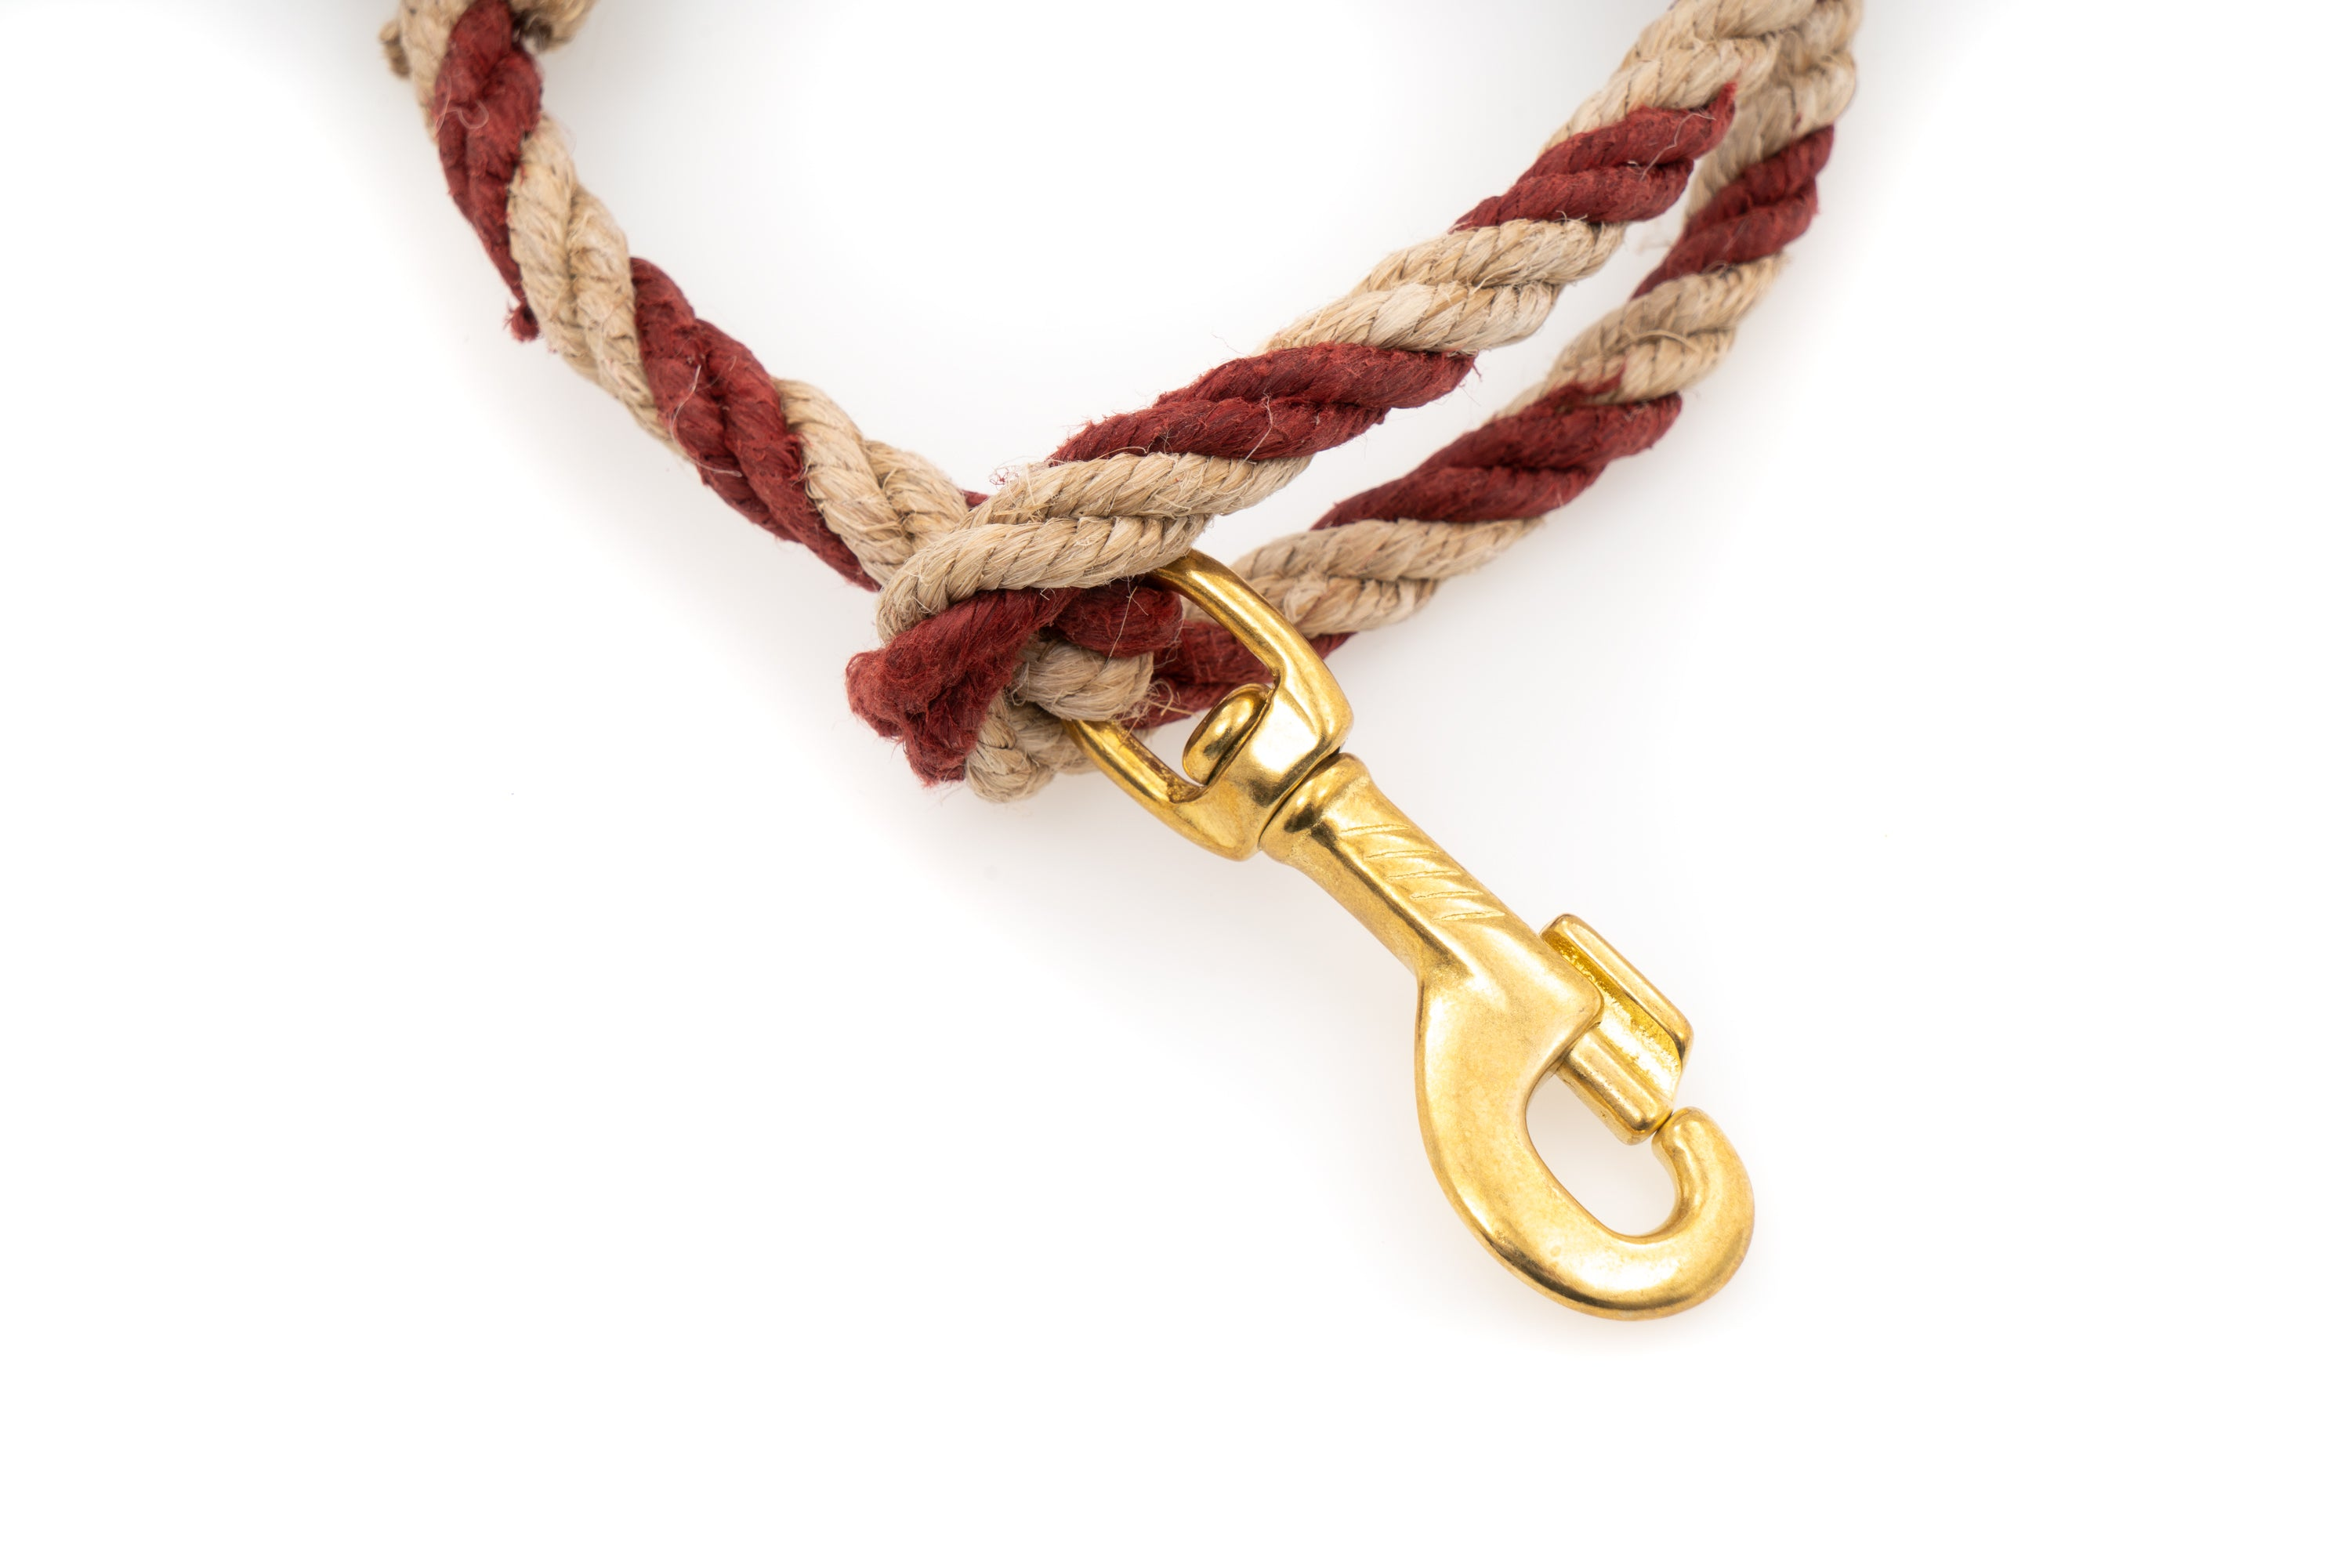 Short Dog Leash - Handspun Hand Laid Authentic Artisanal Hemp Rope